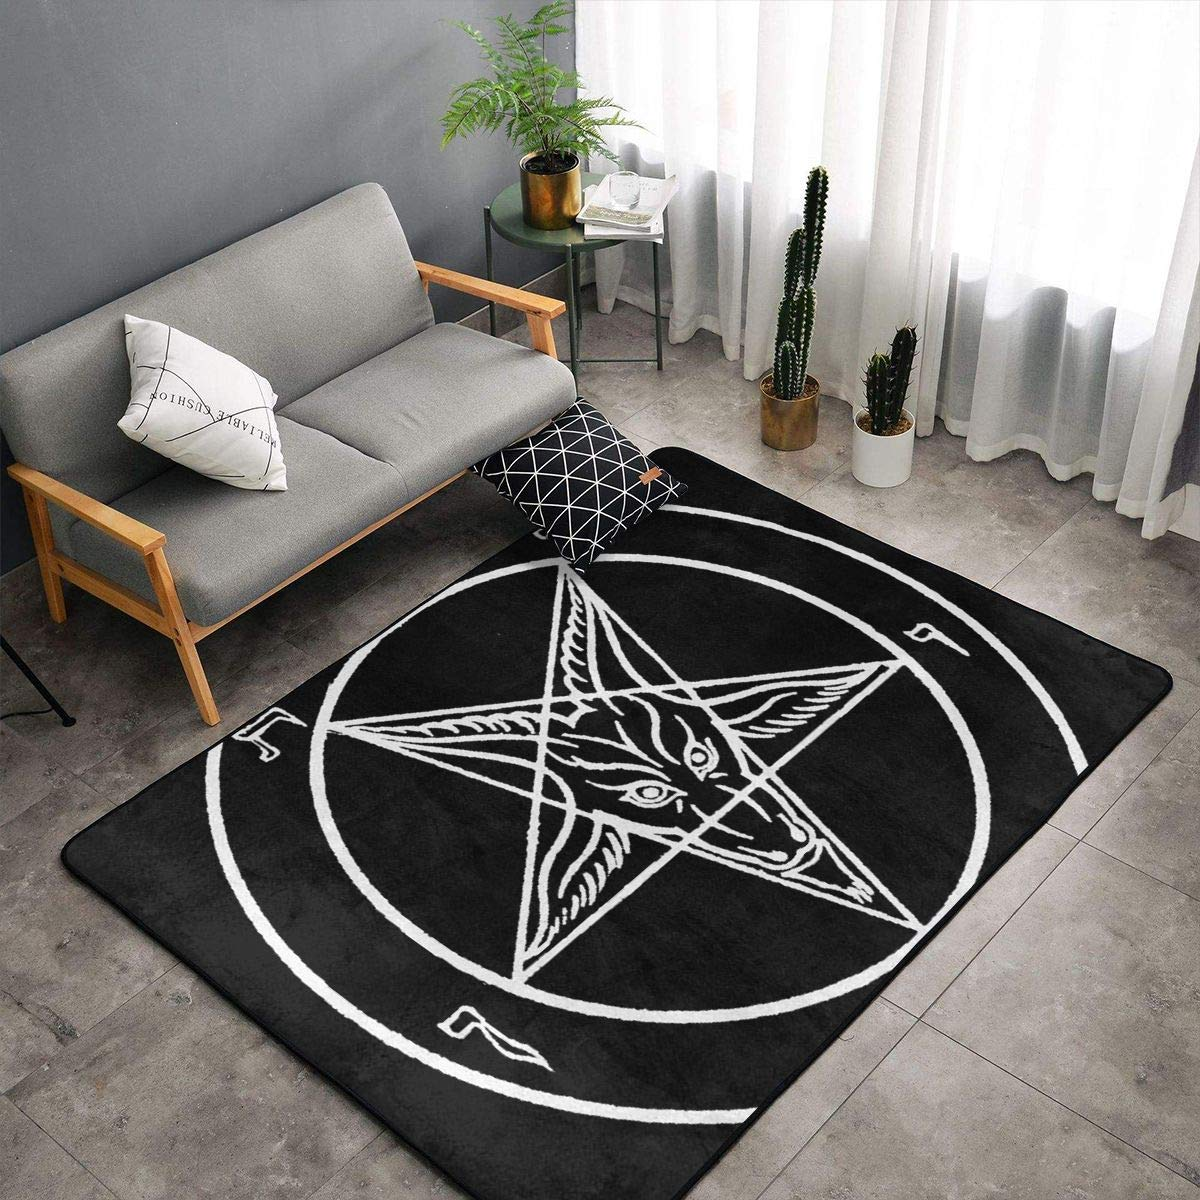 Memory Foam Kitchen Rugs for Hotel Kid Rooms Dorm Room, Non Skid Backing Floor Pad Rugs Comfort Throw Rugs Runner, Anti Fatigue, Aazazel Storm Goat Pentagram Satanic Logo Black, 60 x 39 Inch